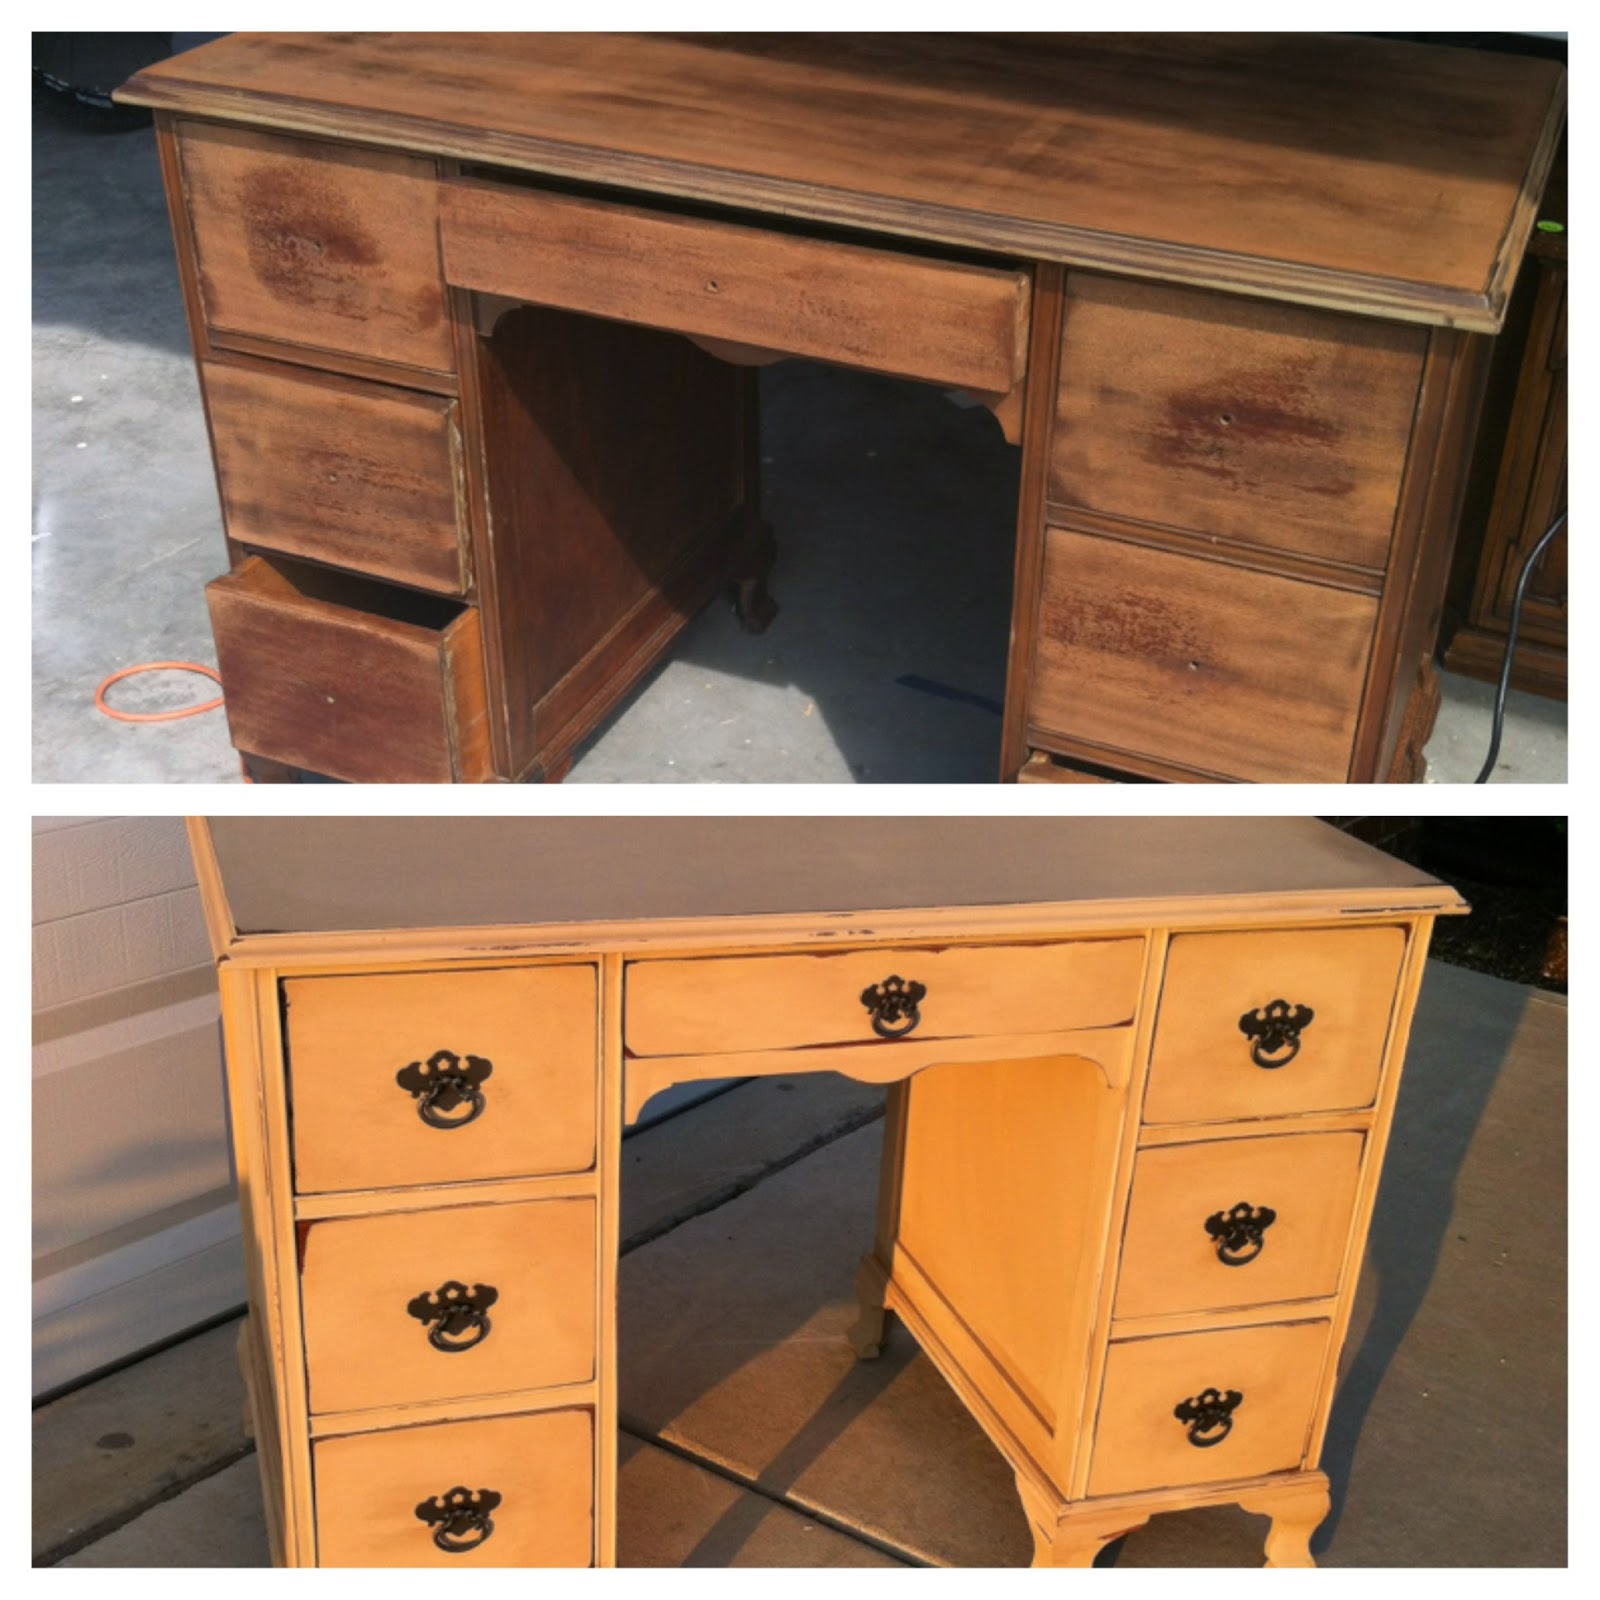 The Top Drawer Upcycled Furniture